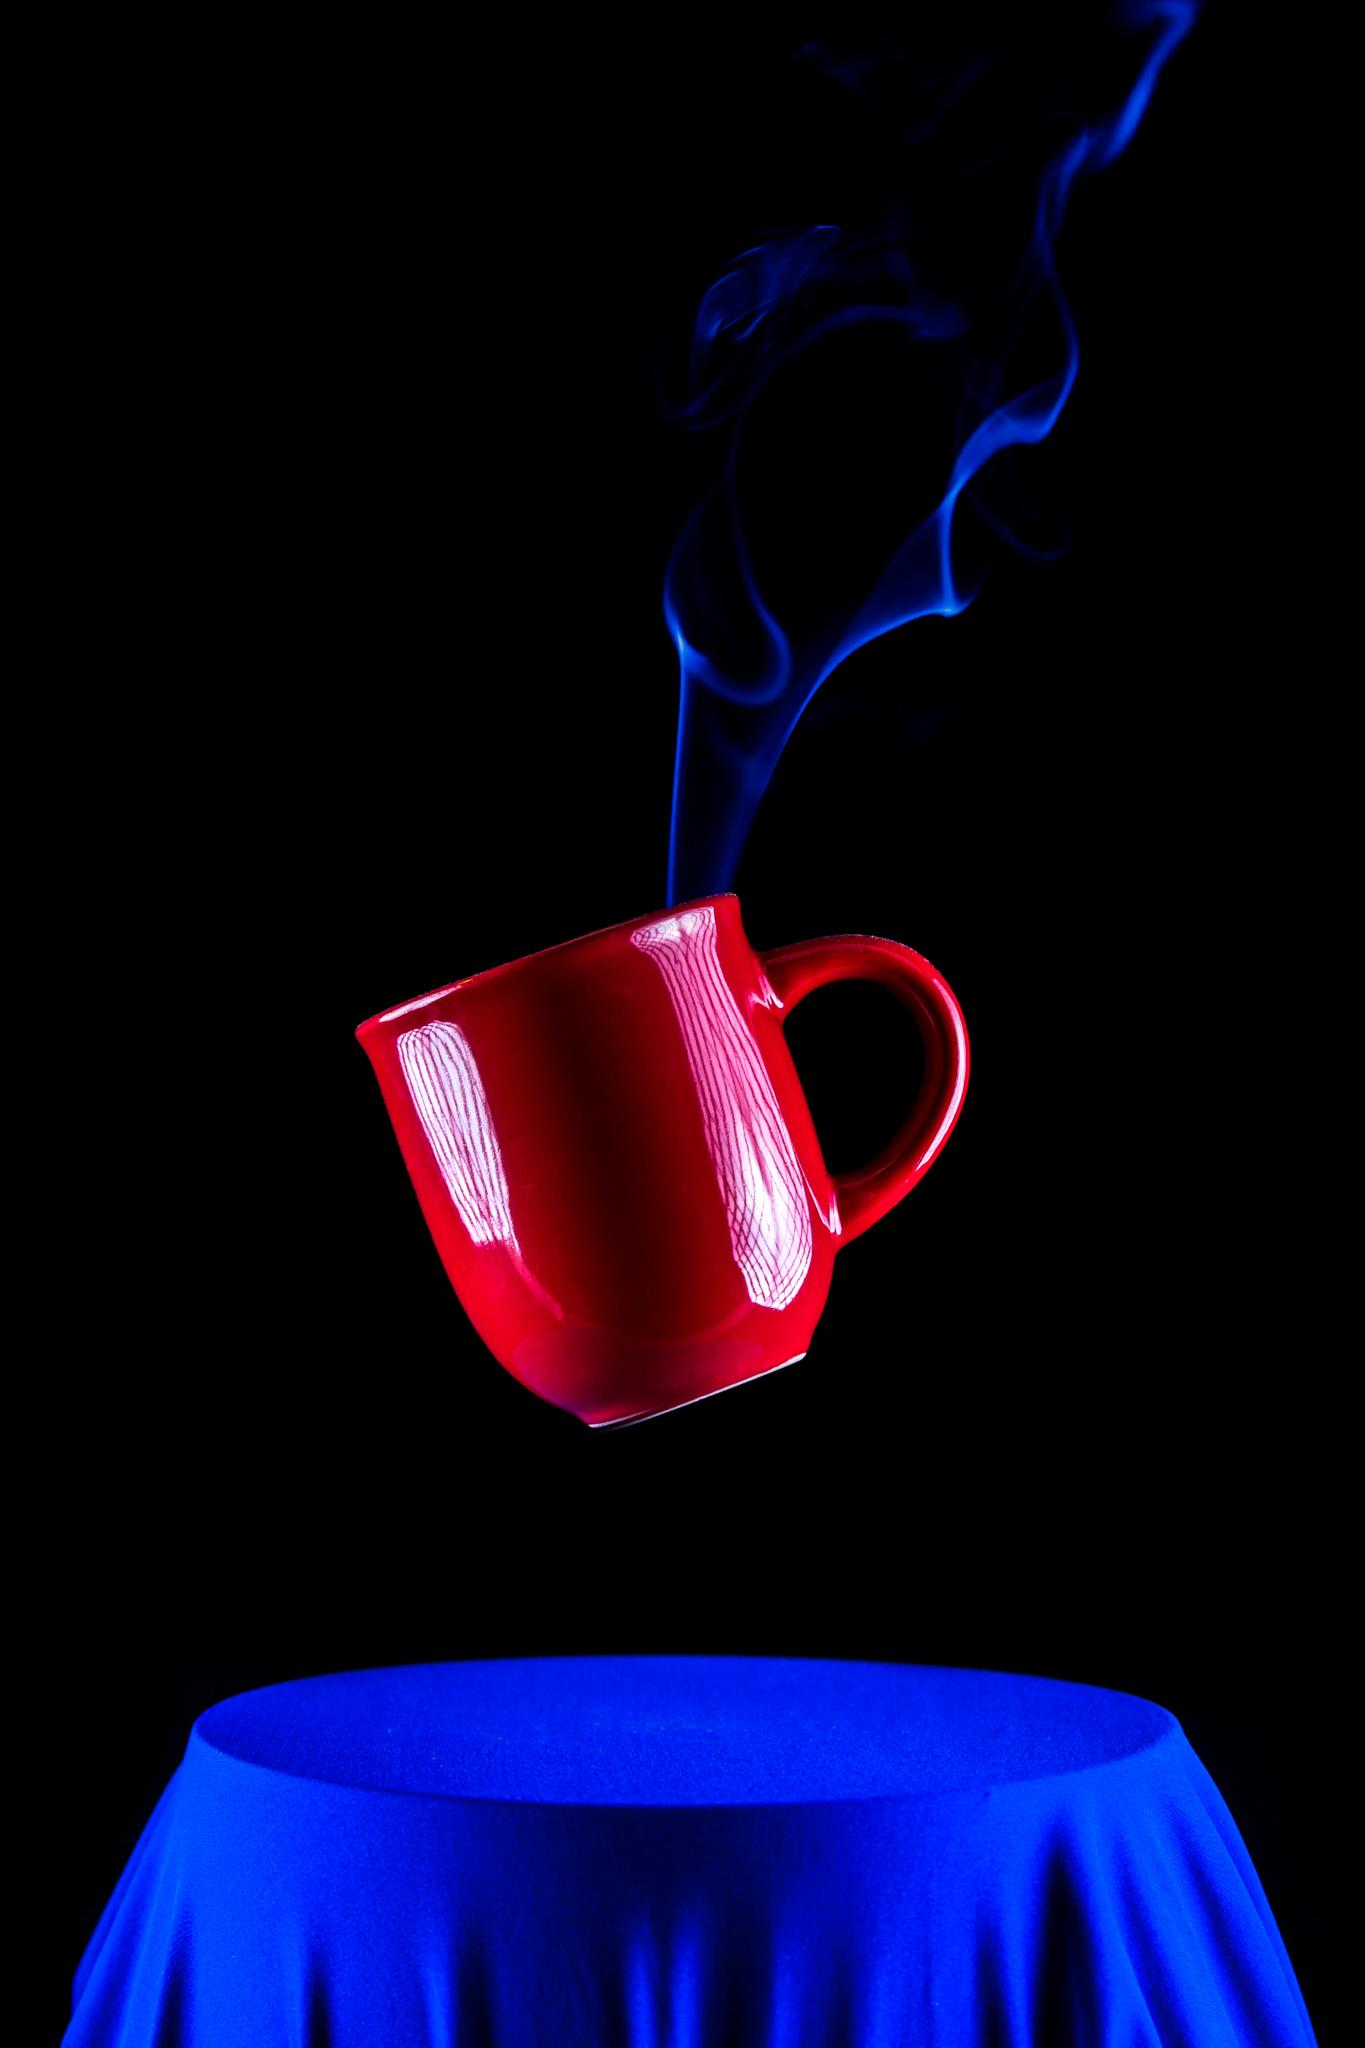 Hot Coffee Drop by Olie's Images